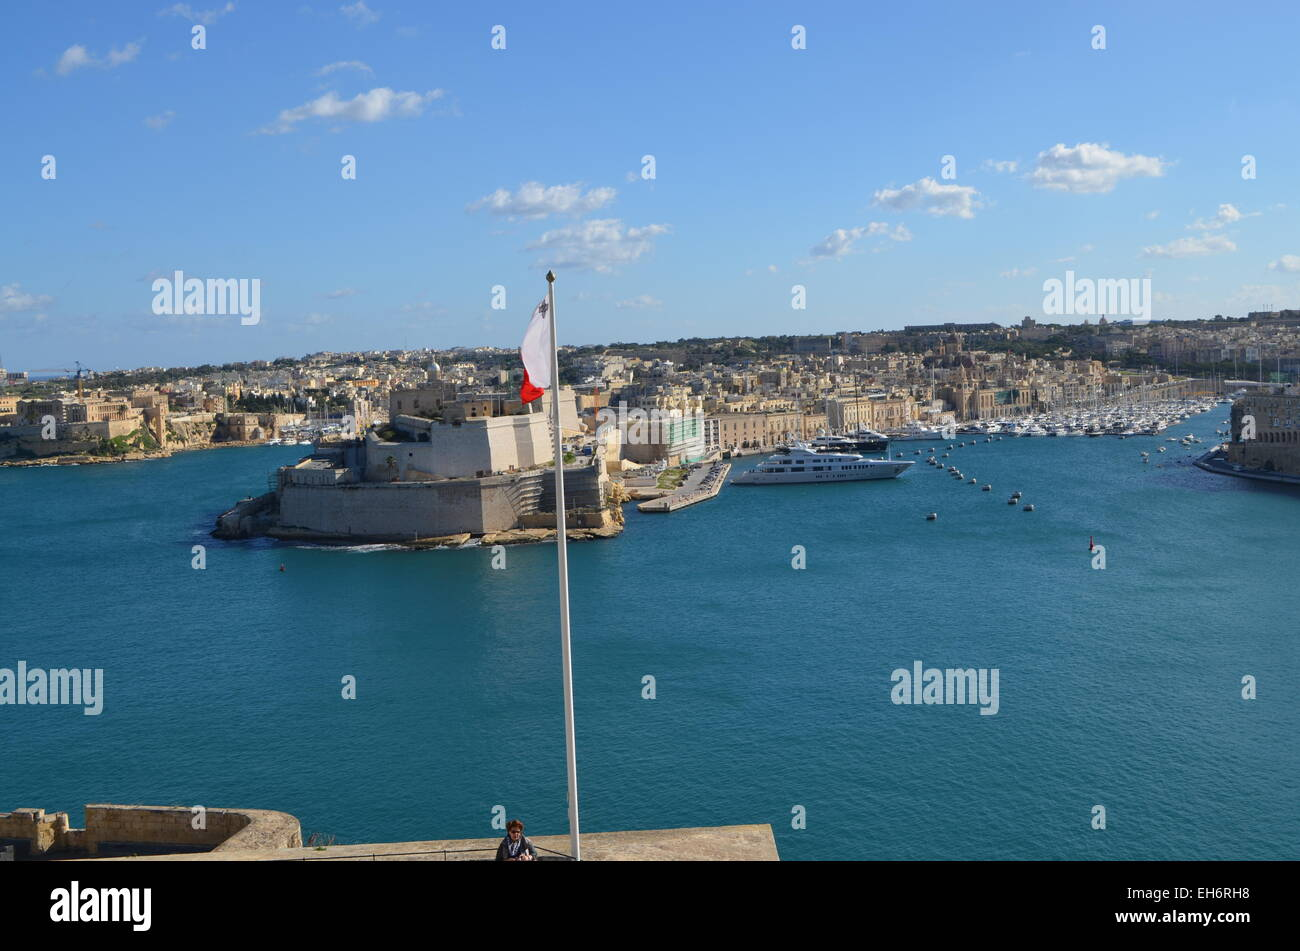 Malta, Valletta, a view The Grand Harbour with Fort St. Angelo to the left and the many sailing boats of the populace - Stock Image